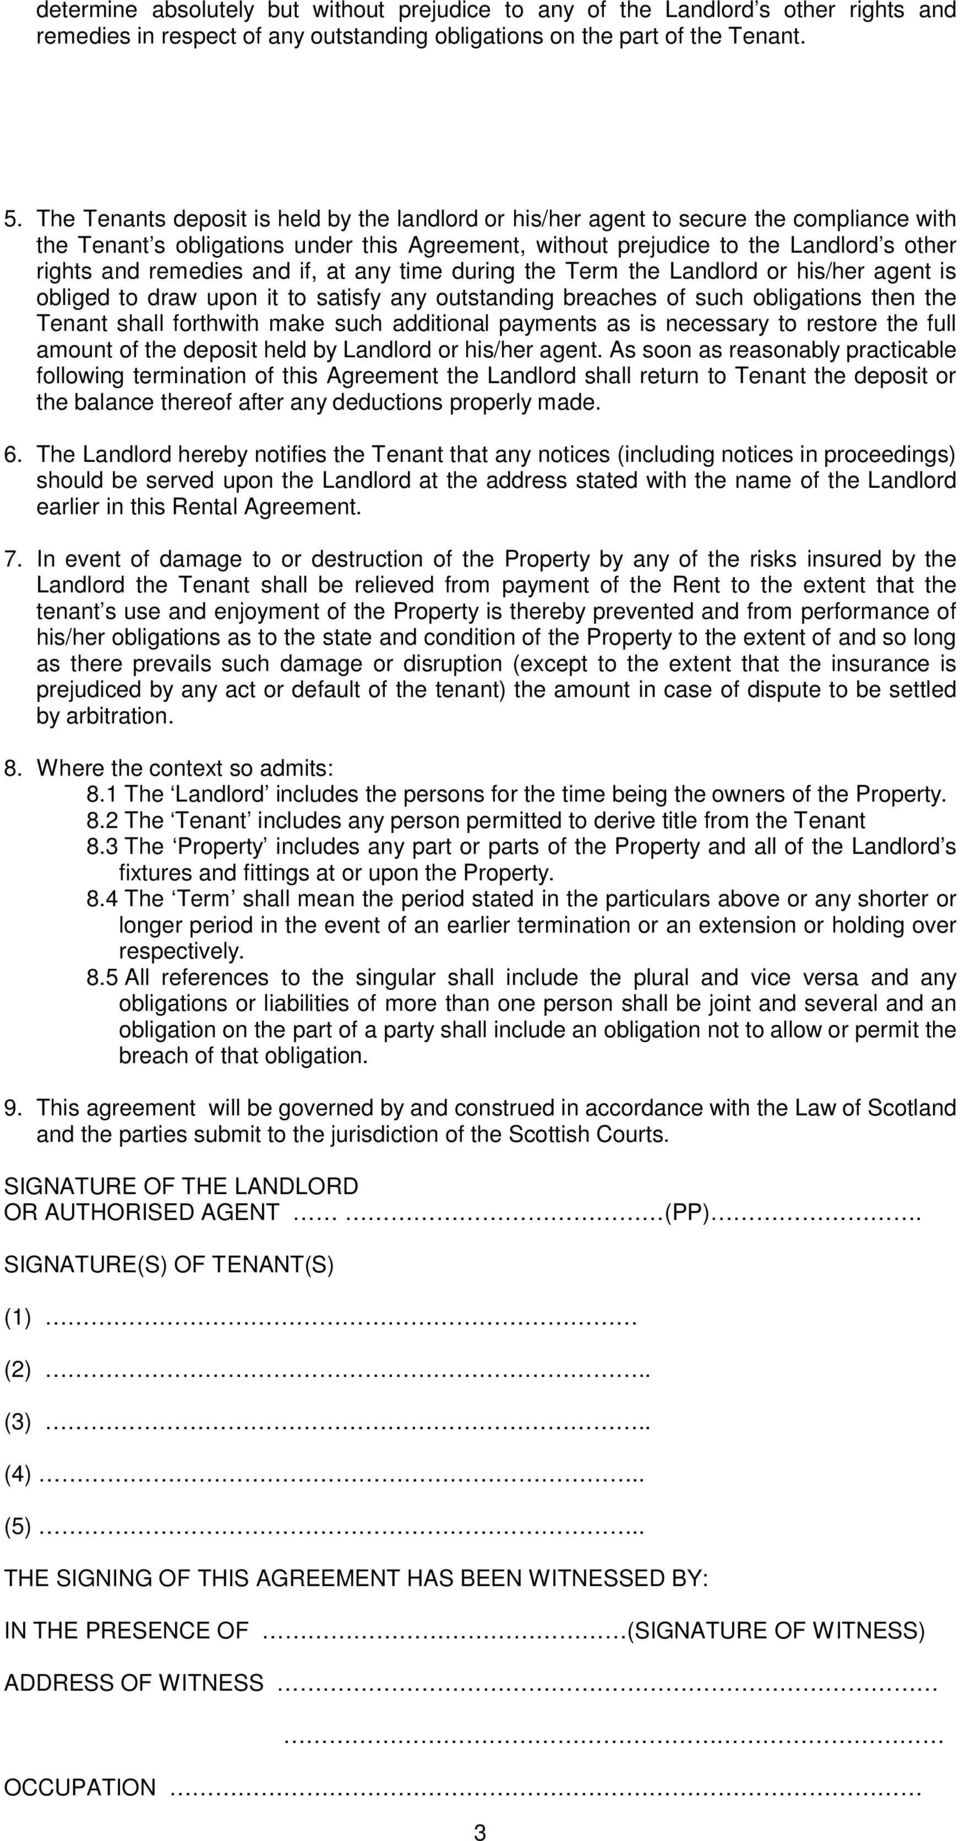 and if, at any time during the Term the Landlord or his/her agent is obliged to draw upon it to satisfy any outstanding breaches of such obligations then the Tenant shall forthwith make such